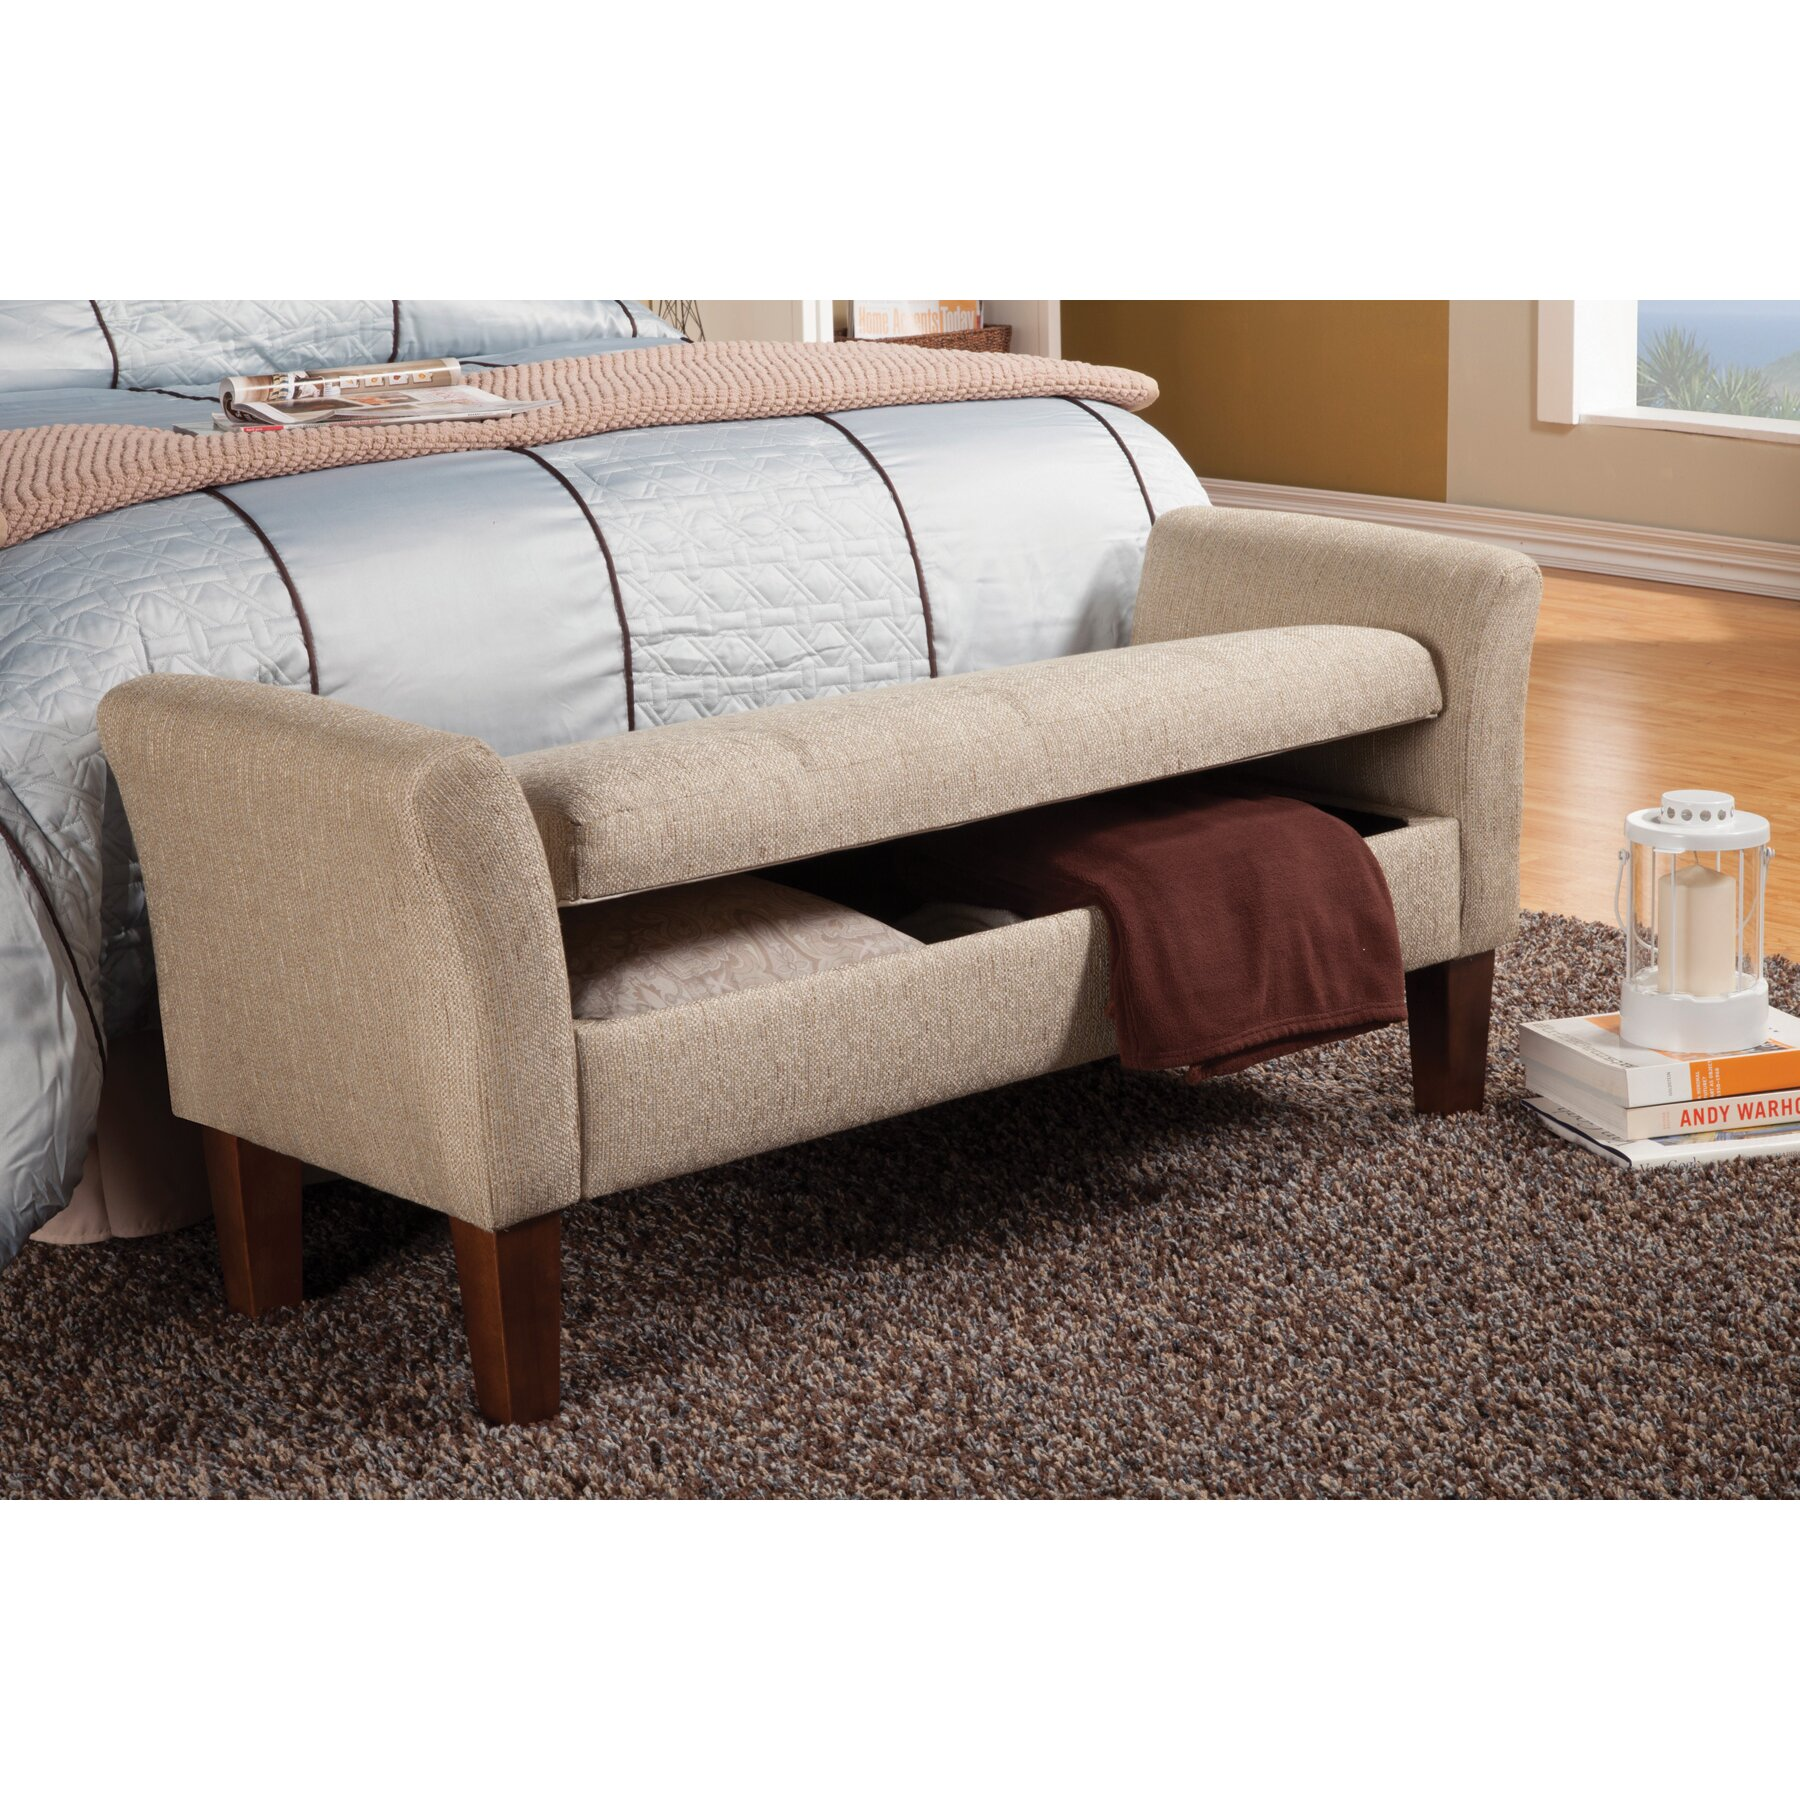 wildon home 174 upholstered storage bedroom bench reviews 14173 | wildon home 2525c2 2525ae upholstered storage bedroom bench cst17575